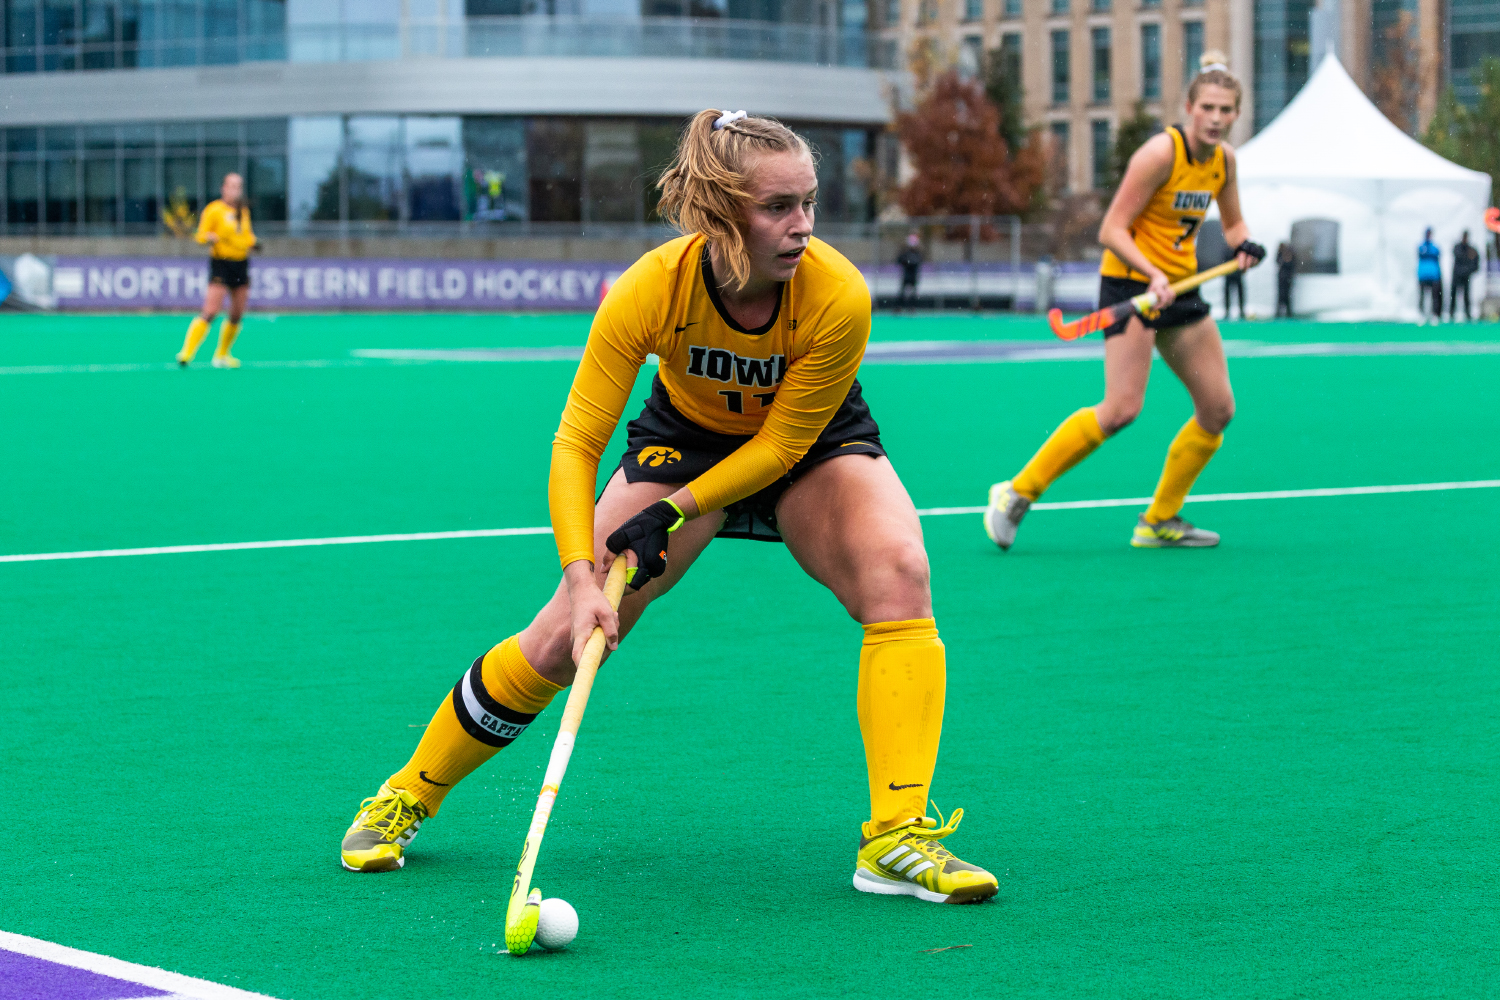 Iowa midfielder Katie Birch looks to pass the ball during the Championship Game in the Big Ten Field Hockey Tournament at Lakeside Field in Evanston, Illinois on Sunday, Nov. 3, 2018. The No. 2 ranked Terrapins defeated the No. 8 ranked Hawkeyes 2-1.